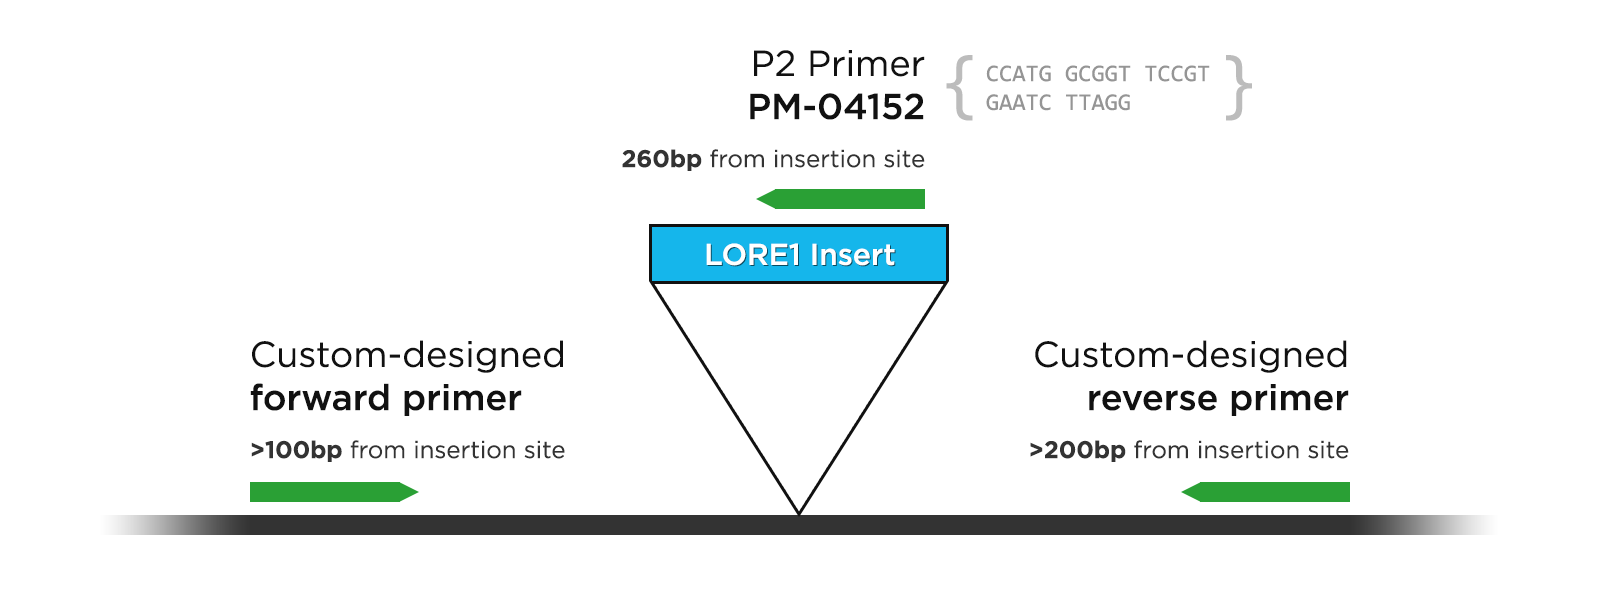 Designing genotyping primers for LORE1 lines